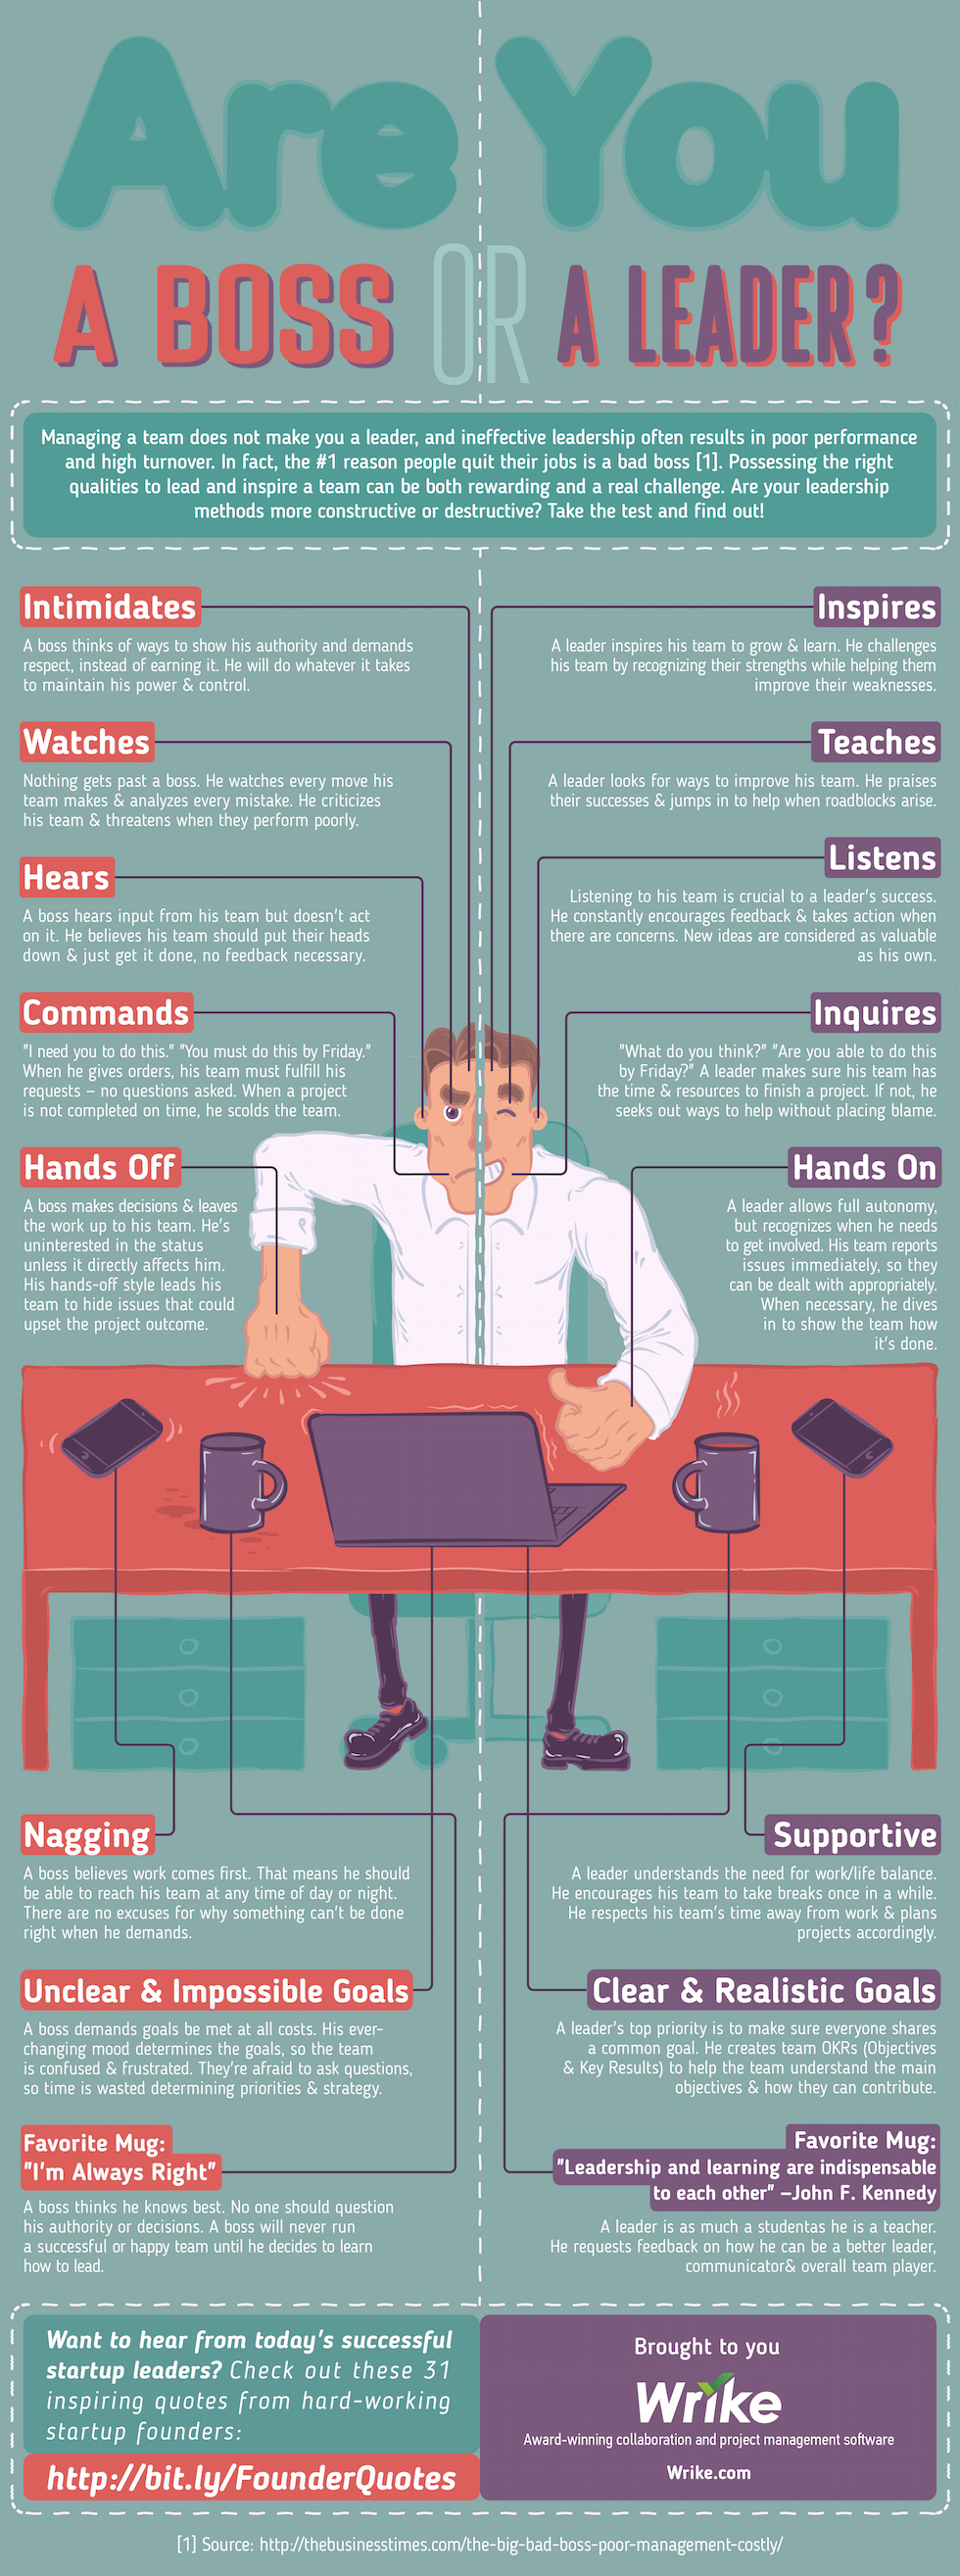 Boss vs. Leader: The Never-Ending Battle Between Power and Leadership (#Infographic)